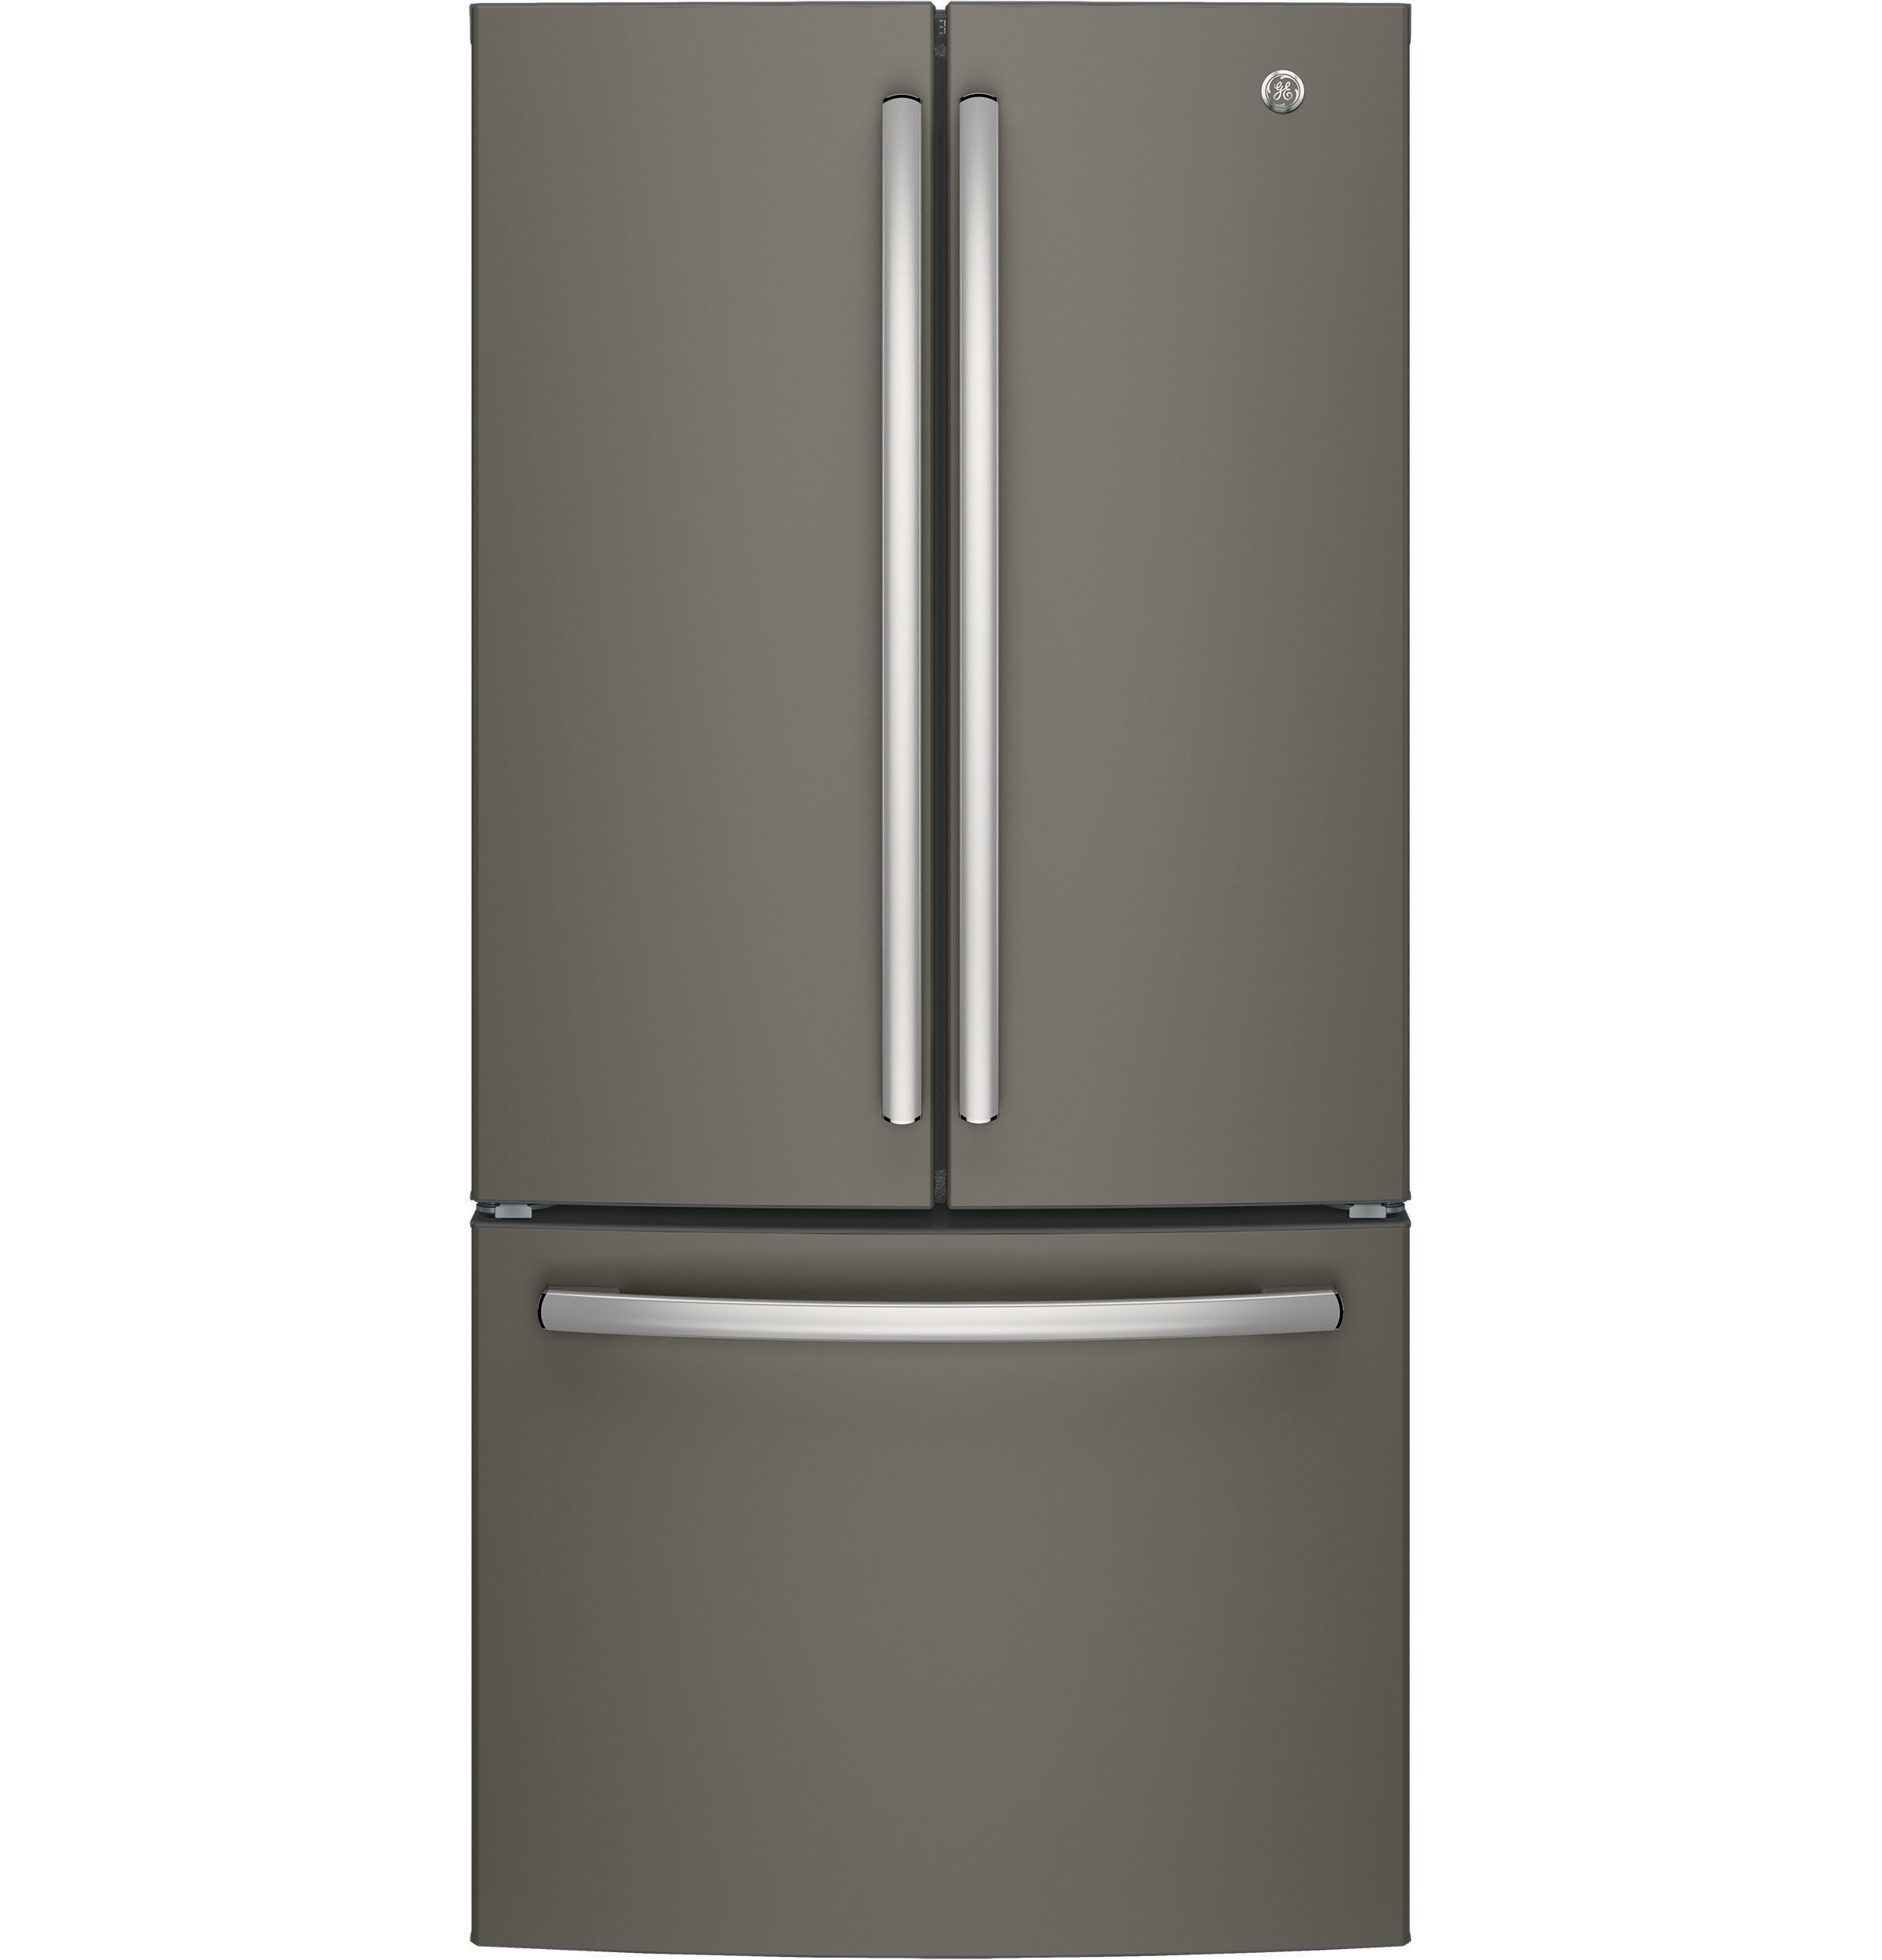 GE GE® ENERGY STAR® 24.7 Cu. Ft. French-Door Refrigerator